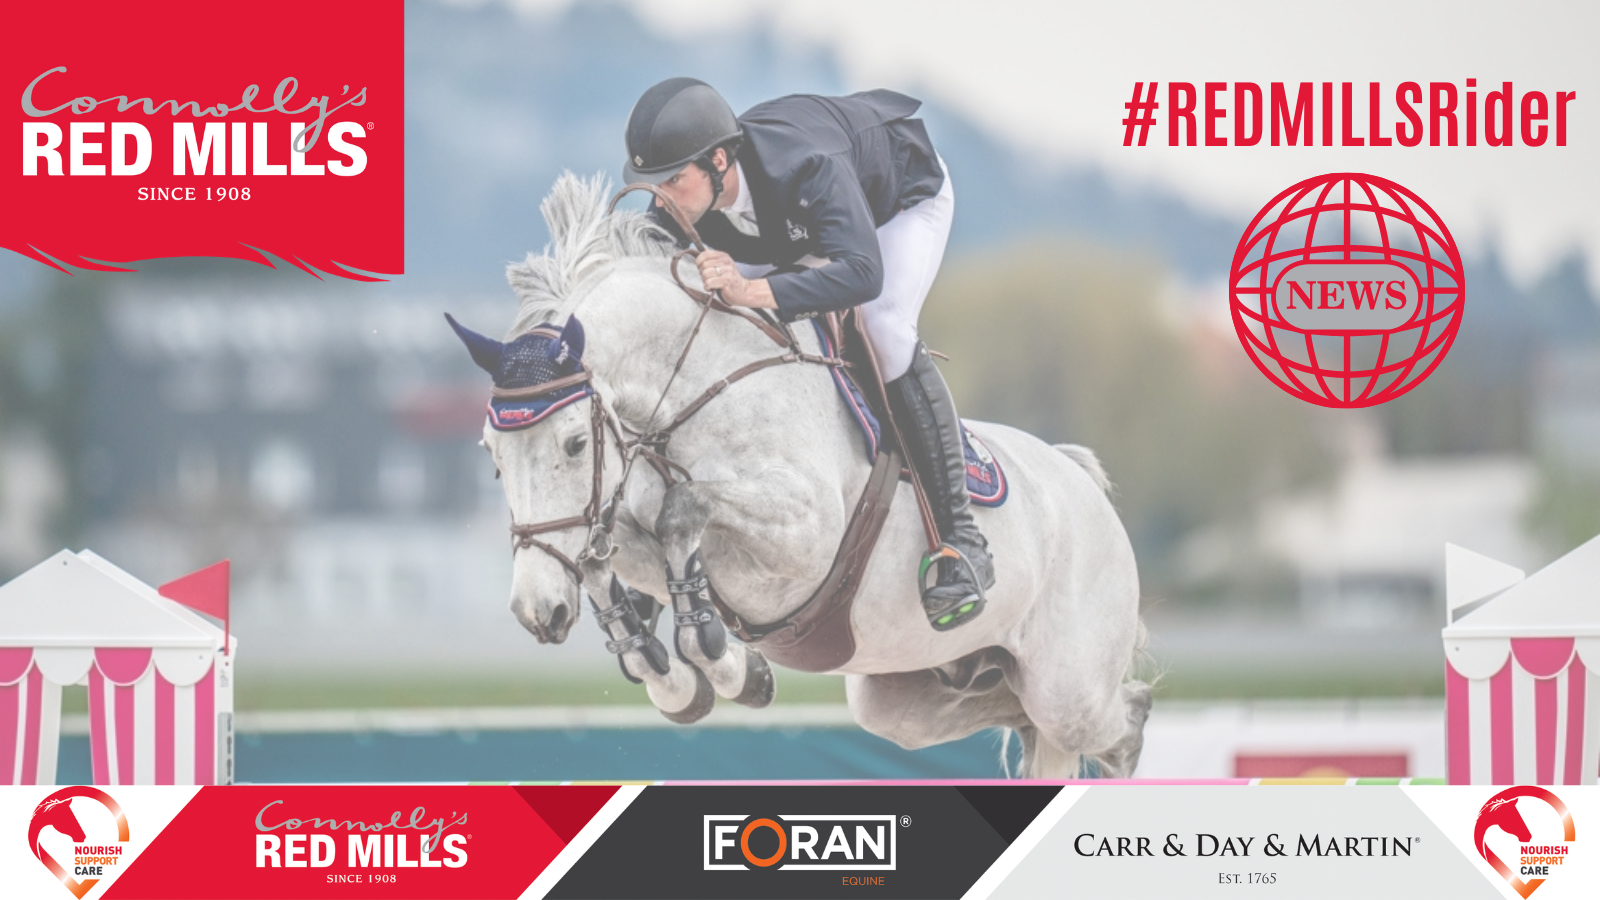 RED MILLS Riders on Fire!